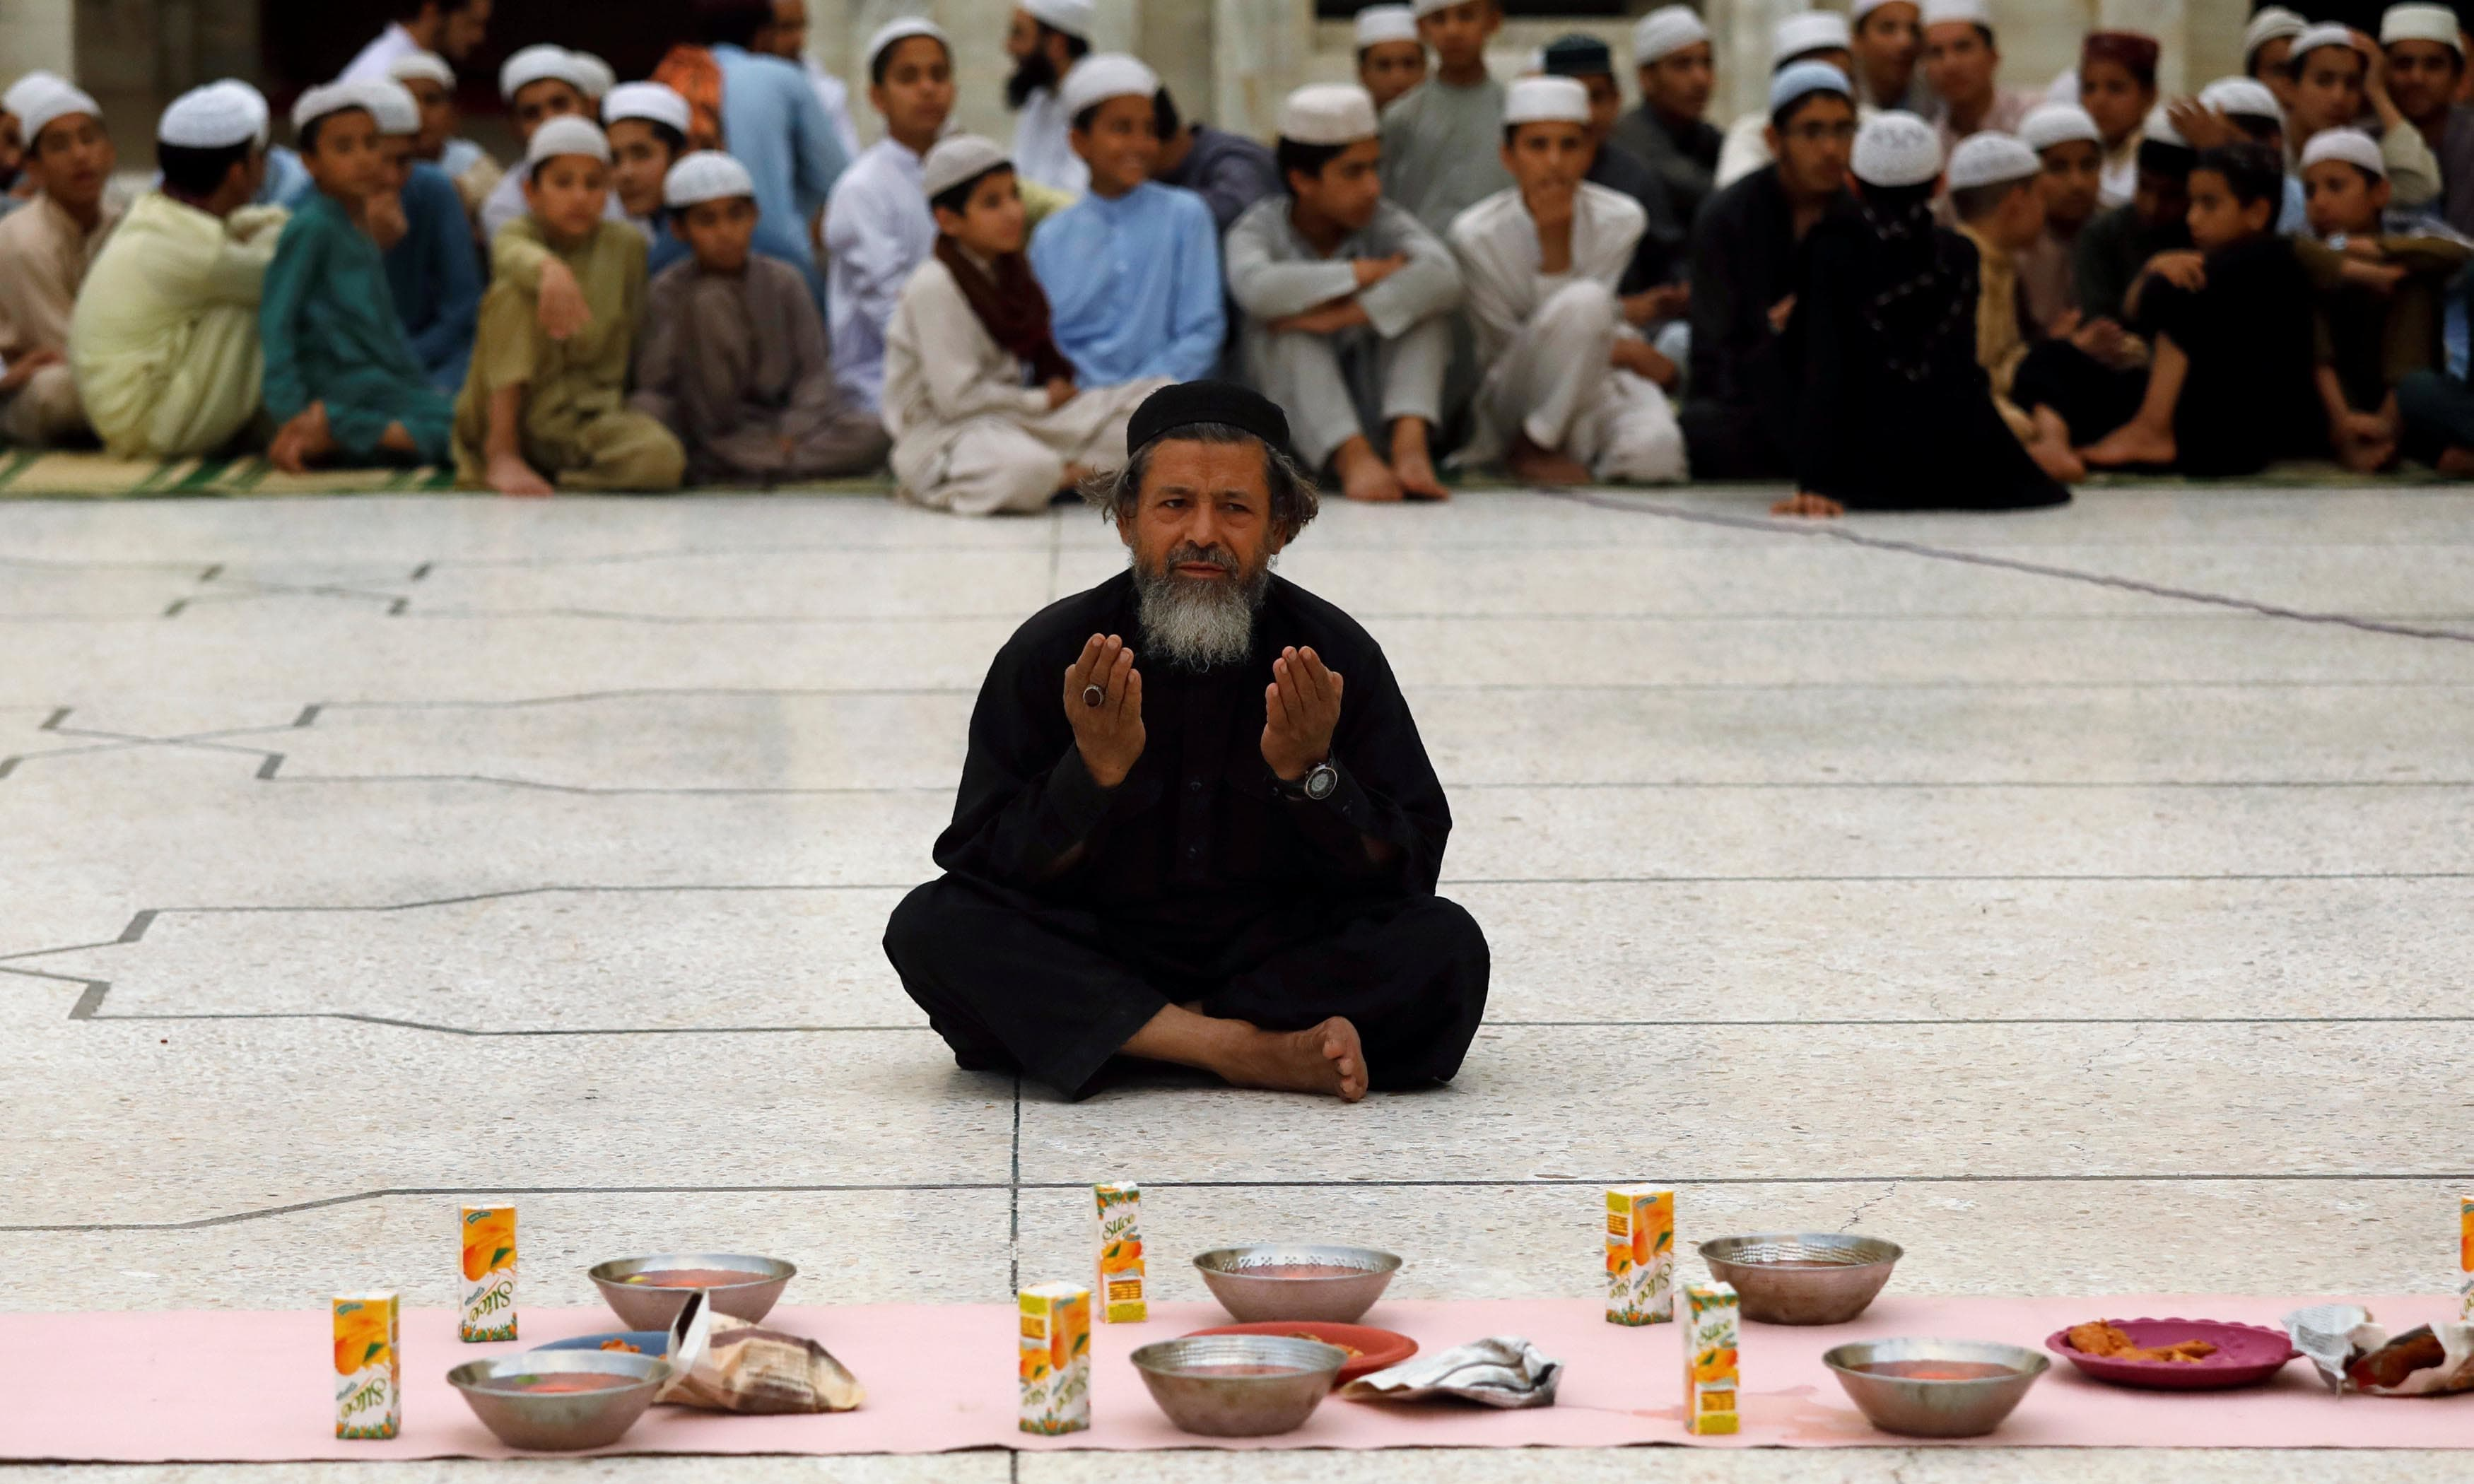 A man prays before breaking his fast during the fasting month of Ramazan in Peshawar. — Reuters